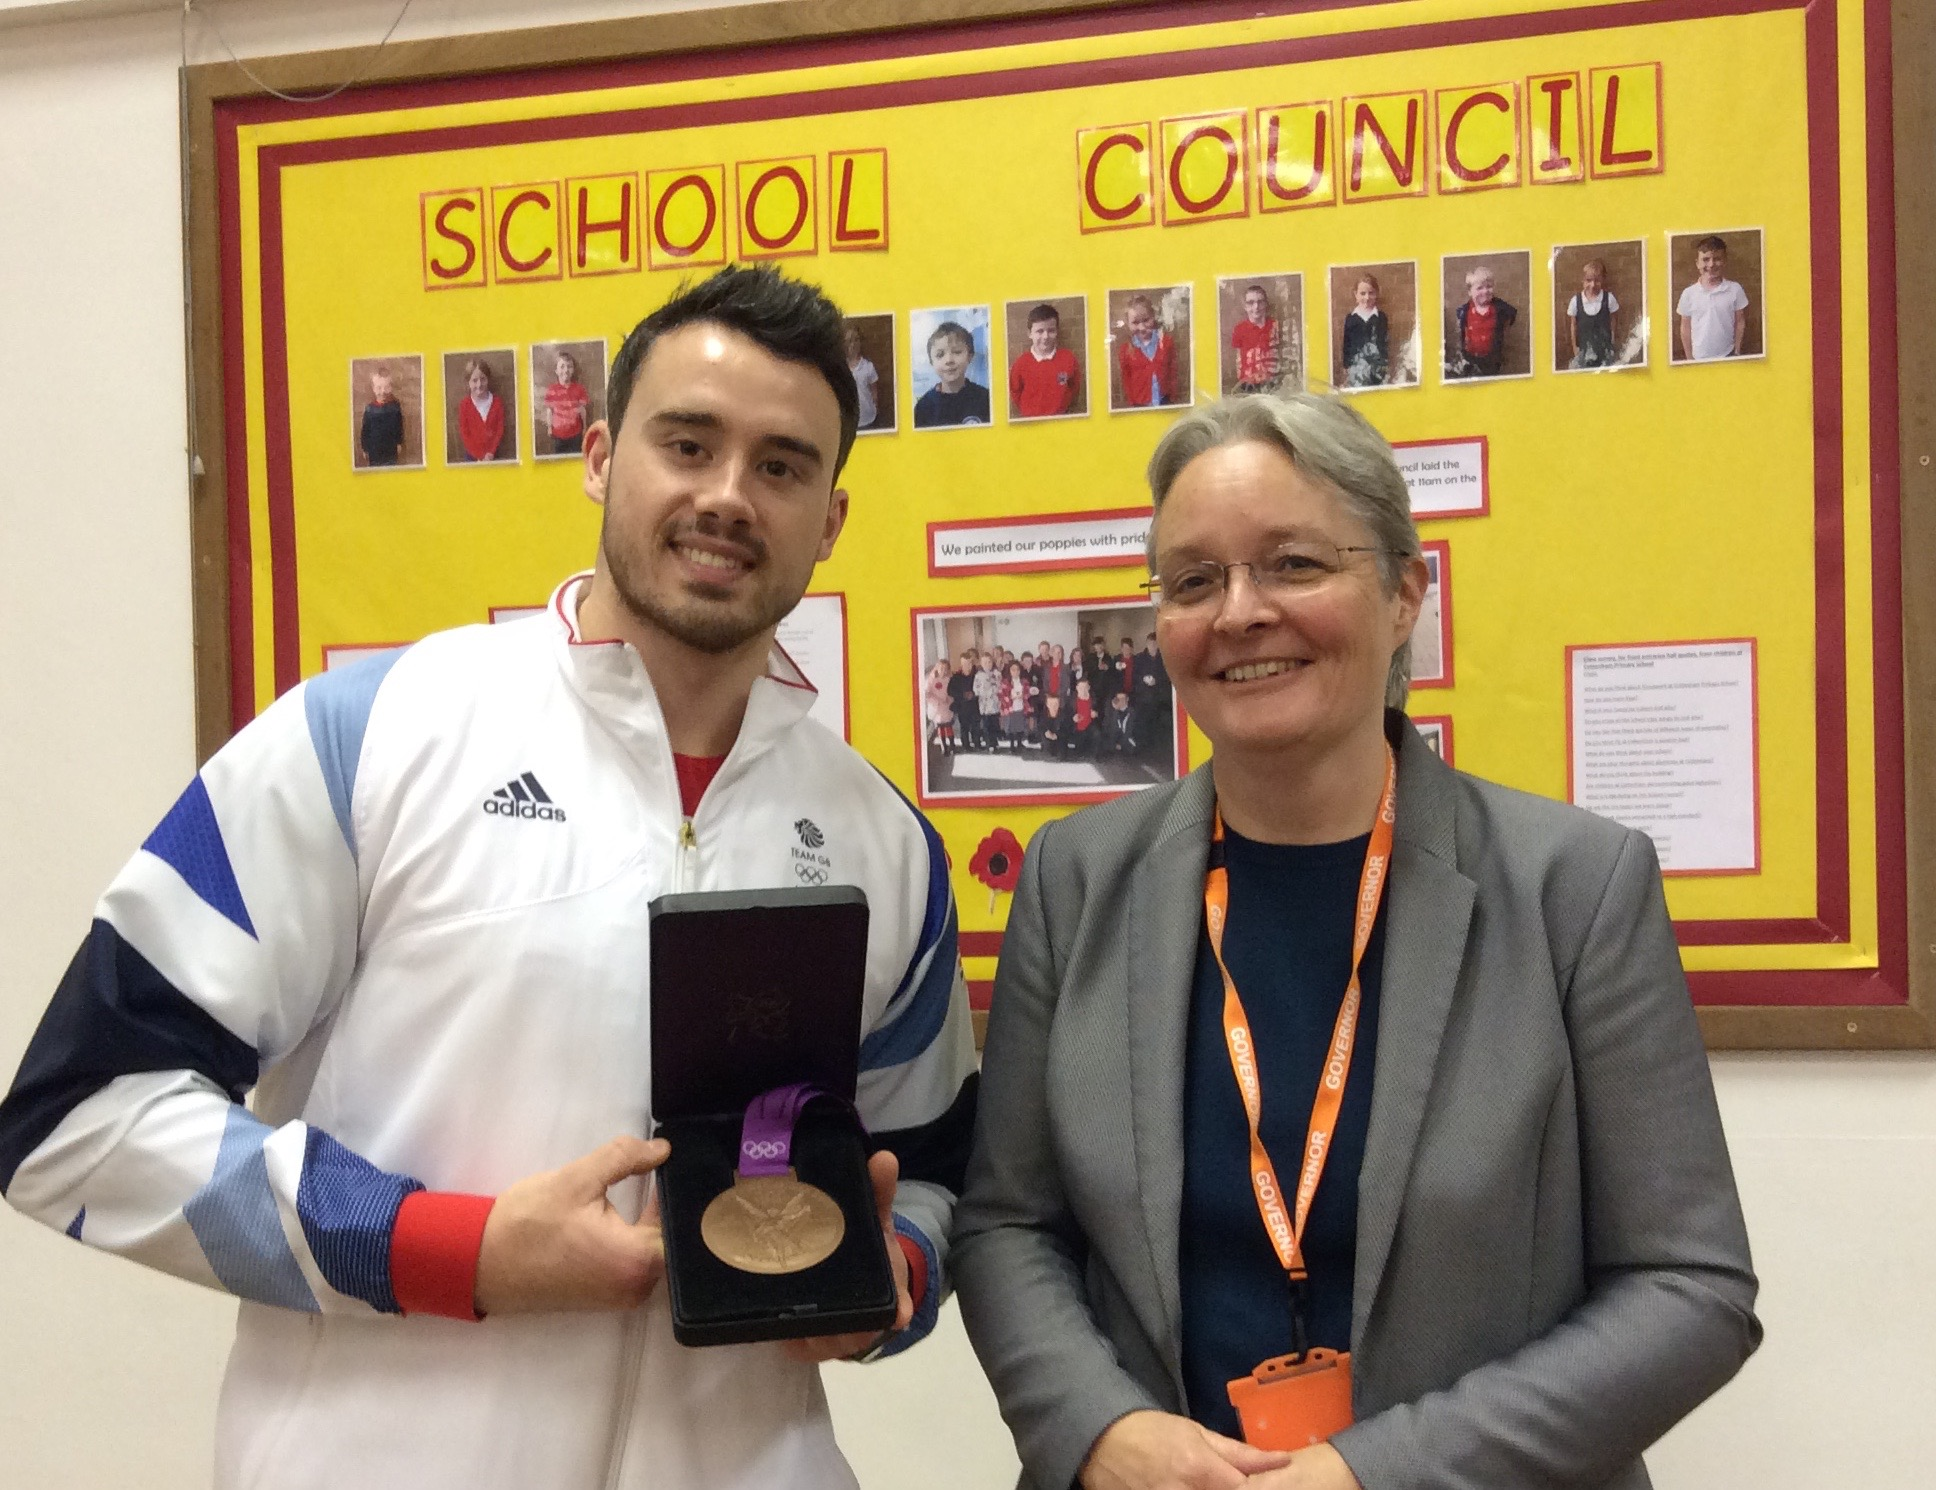 Olympic medallist Kristian Thomas with Cottenham Primary School Governor Sue Arnold